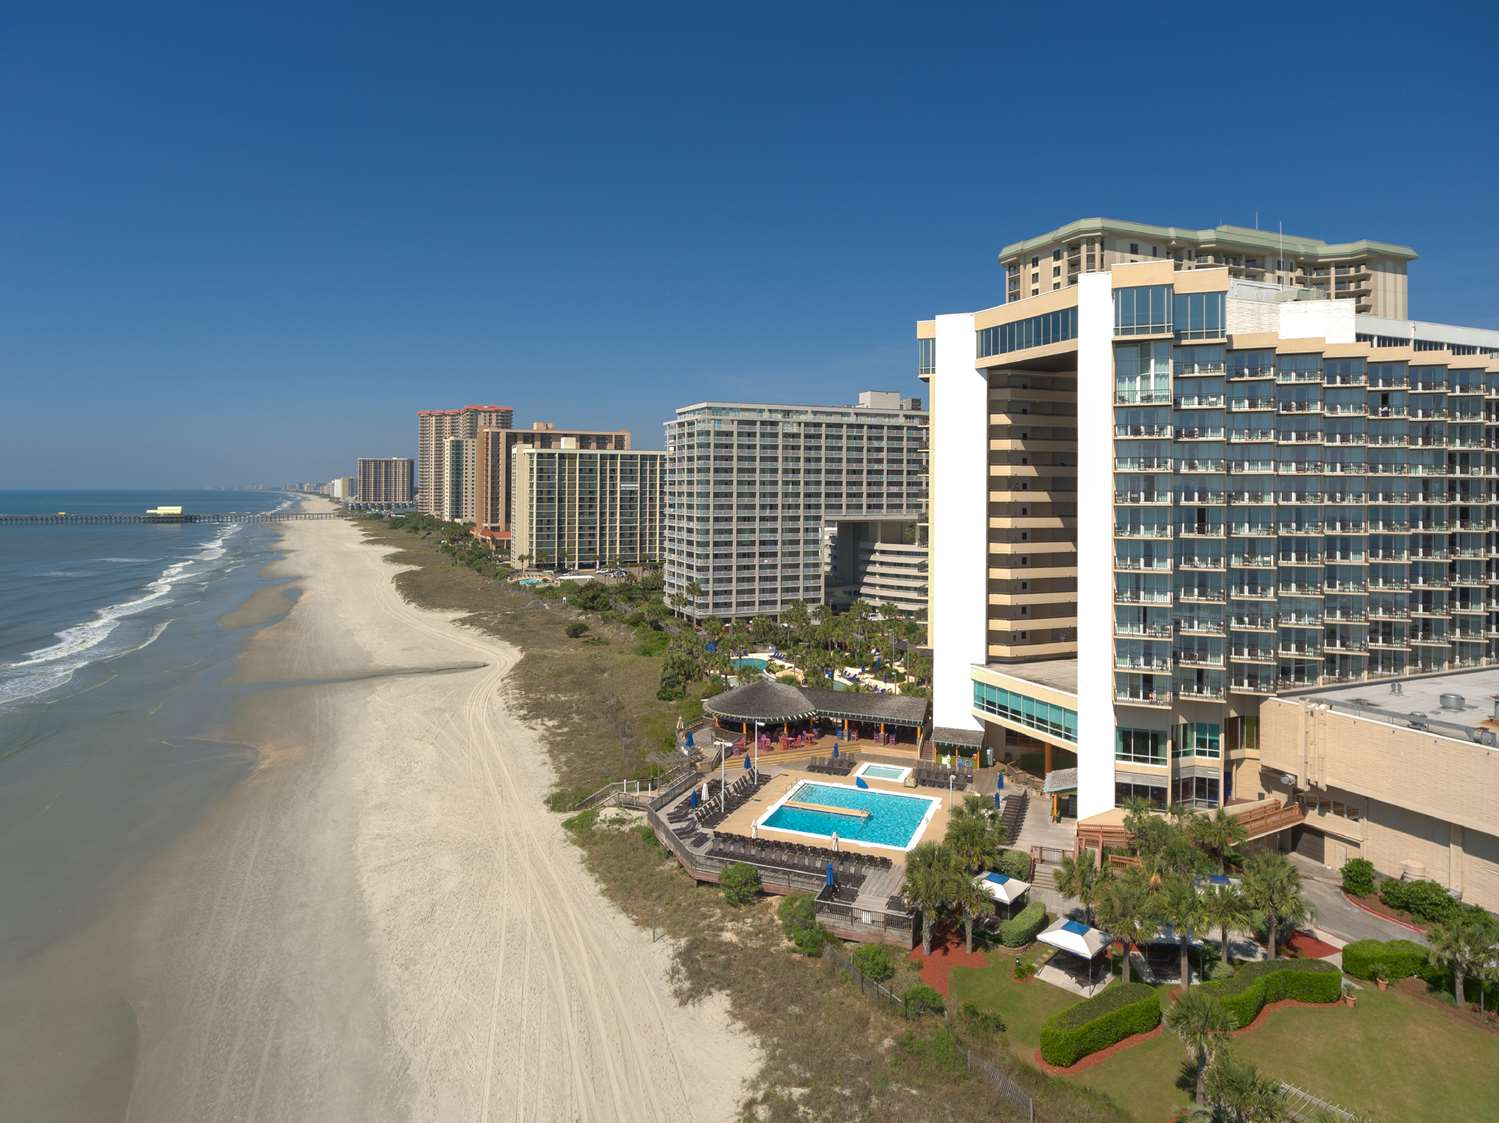 Hilton Resort Myrtle Beach